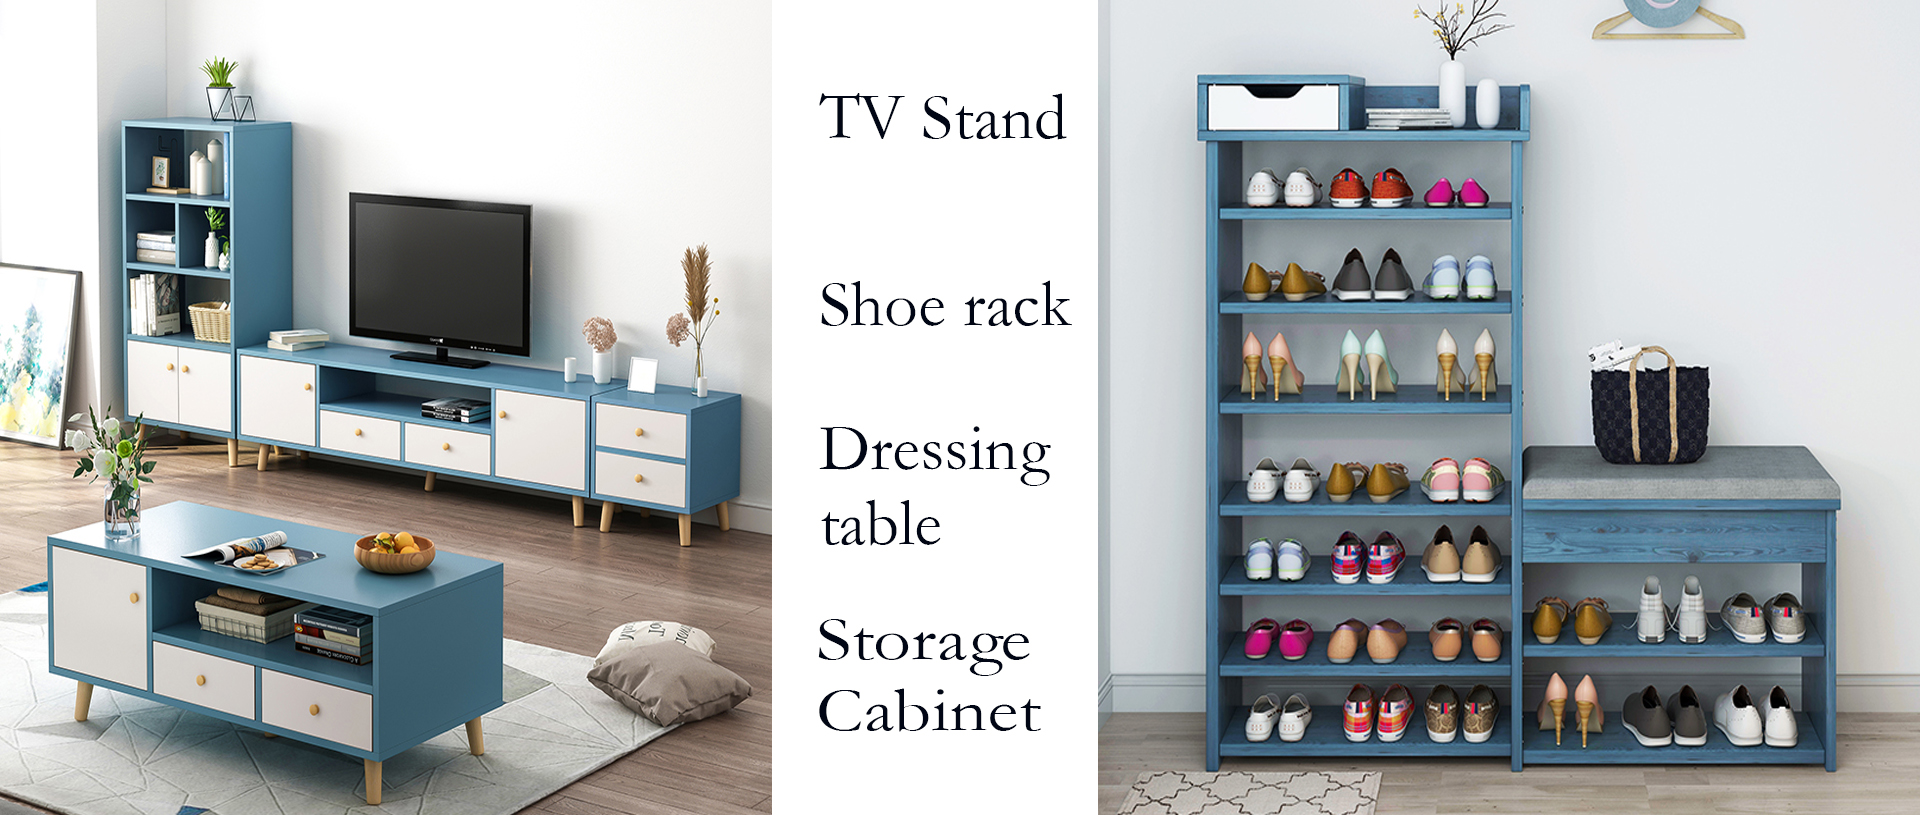 TV stand & shoe rack